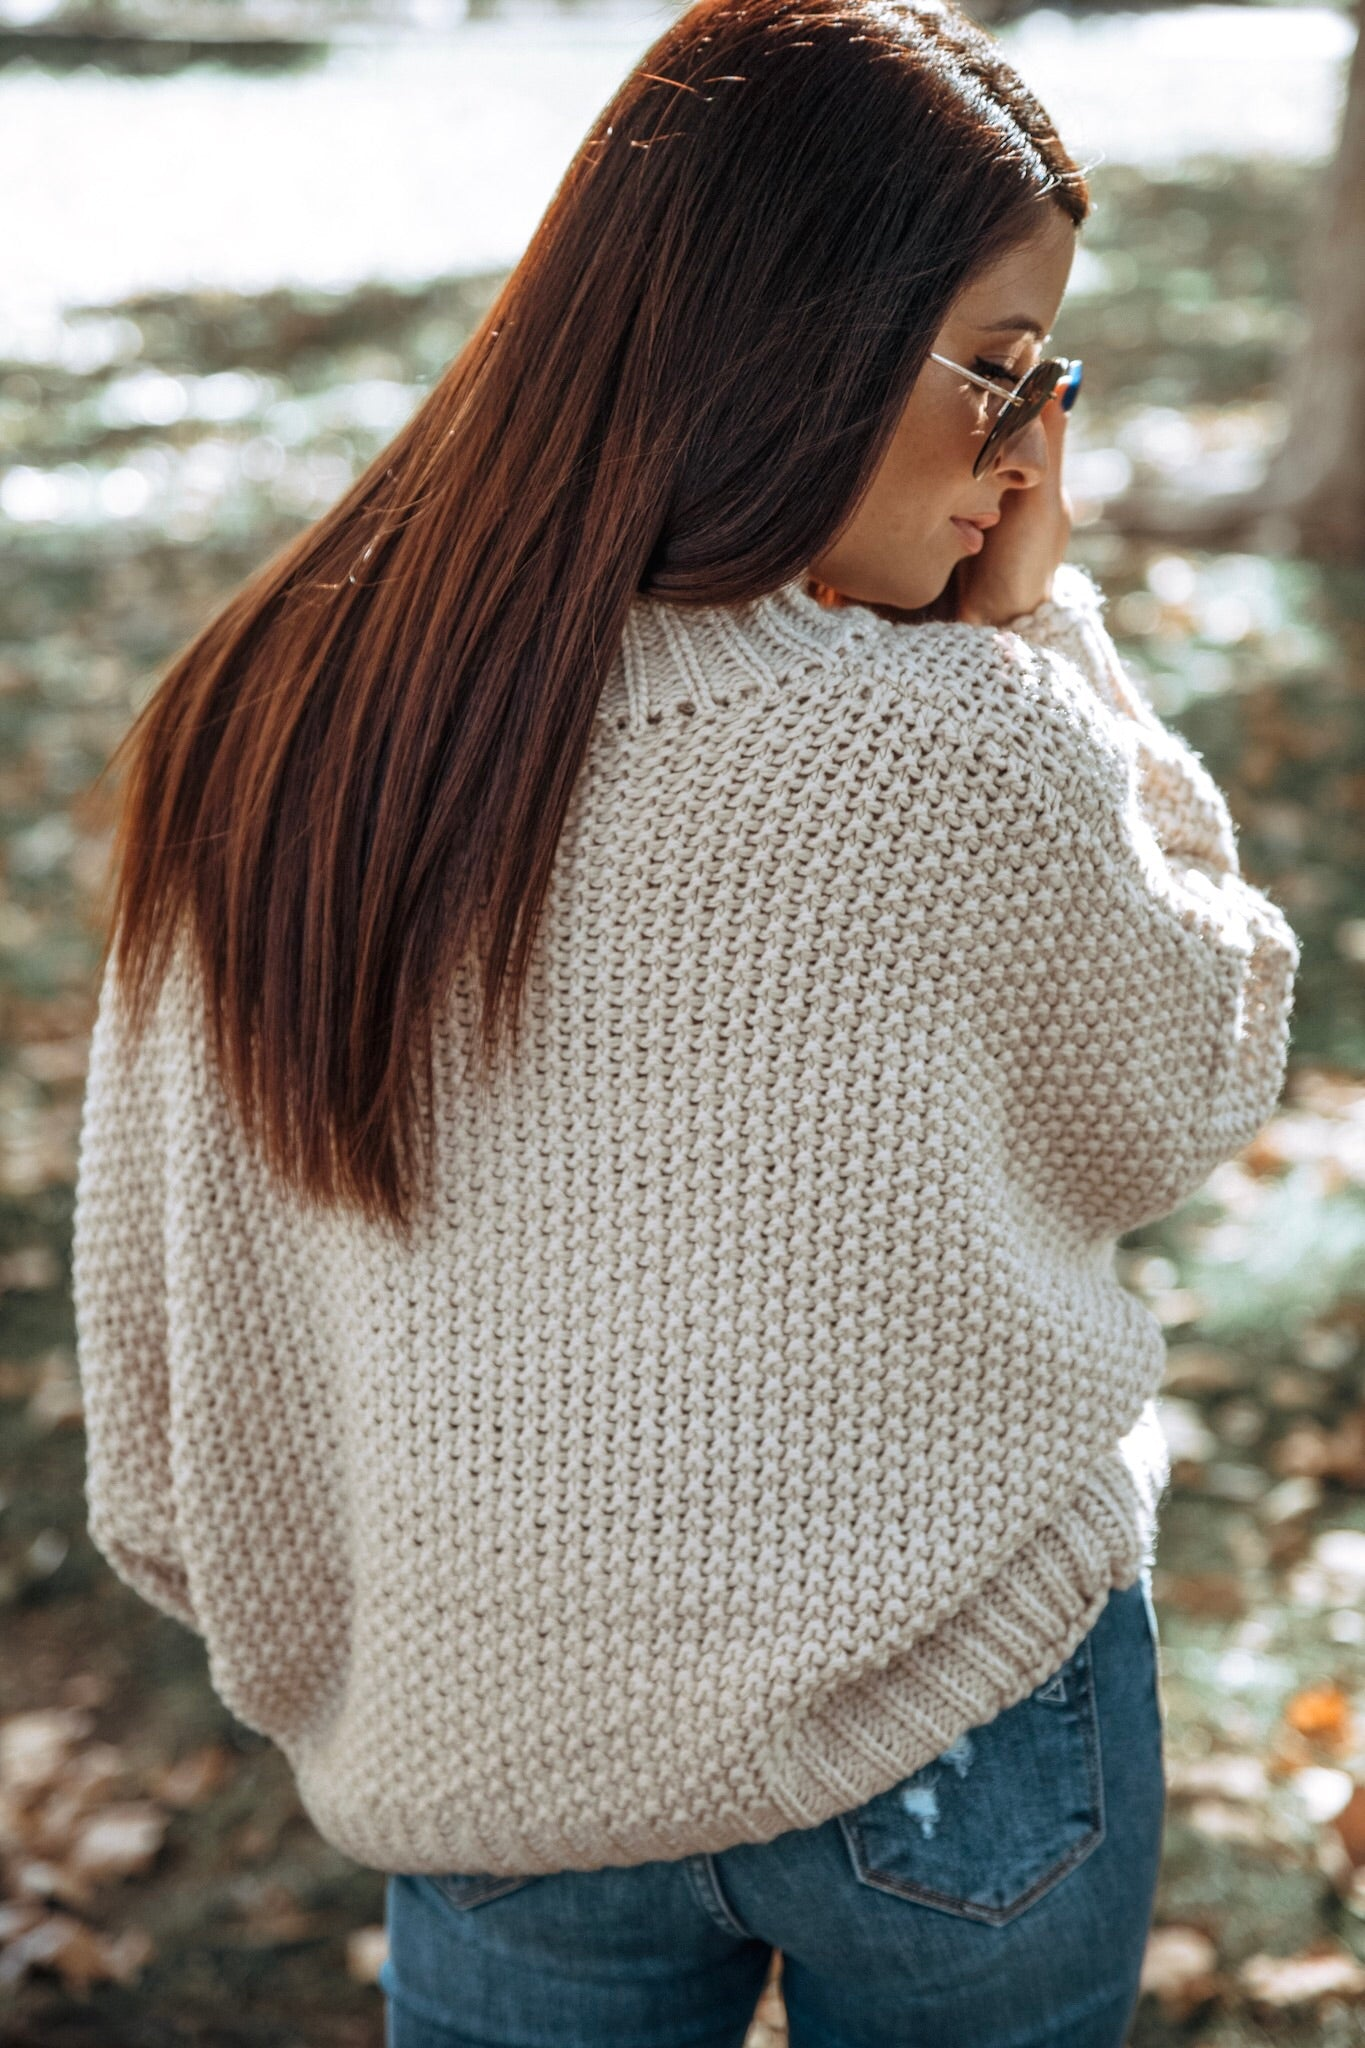 Stolen Hearts Chunky Knit Turtle Neck Boxy Sweater - Natural